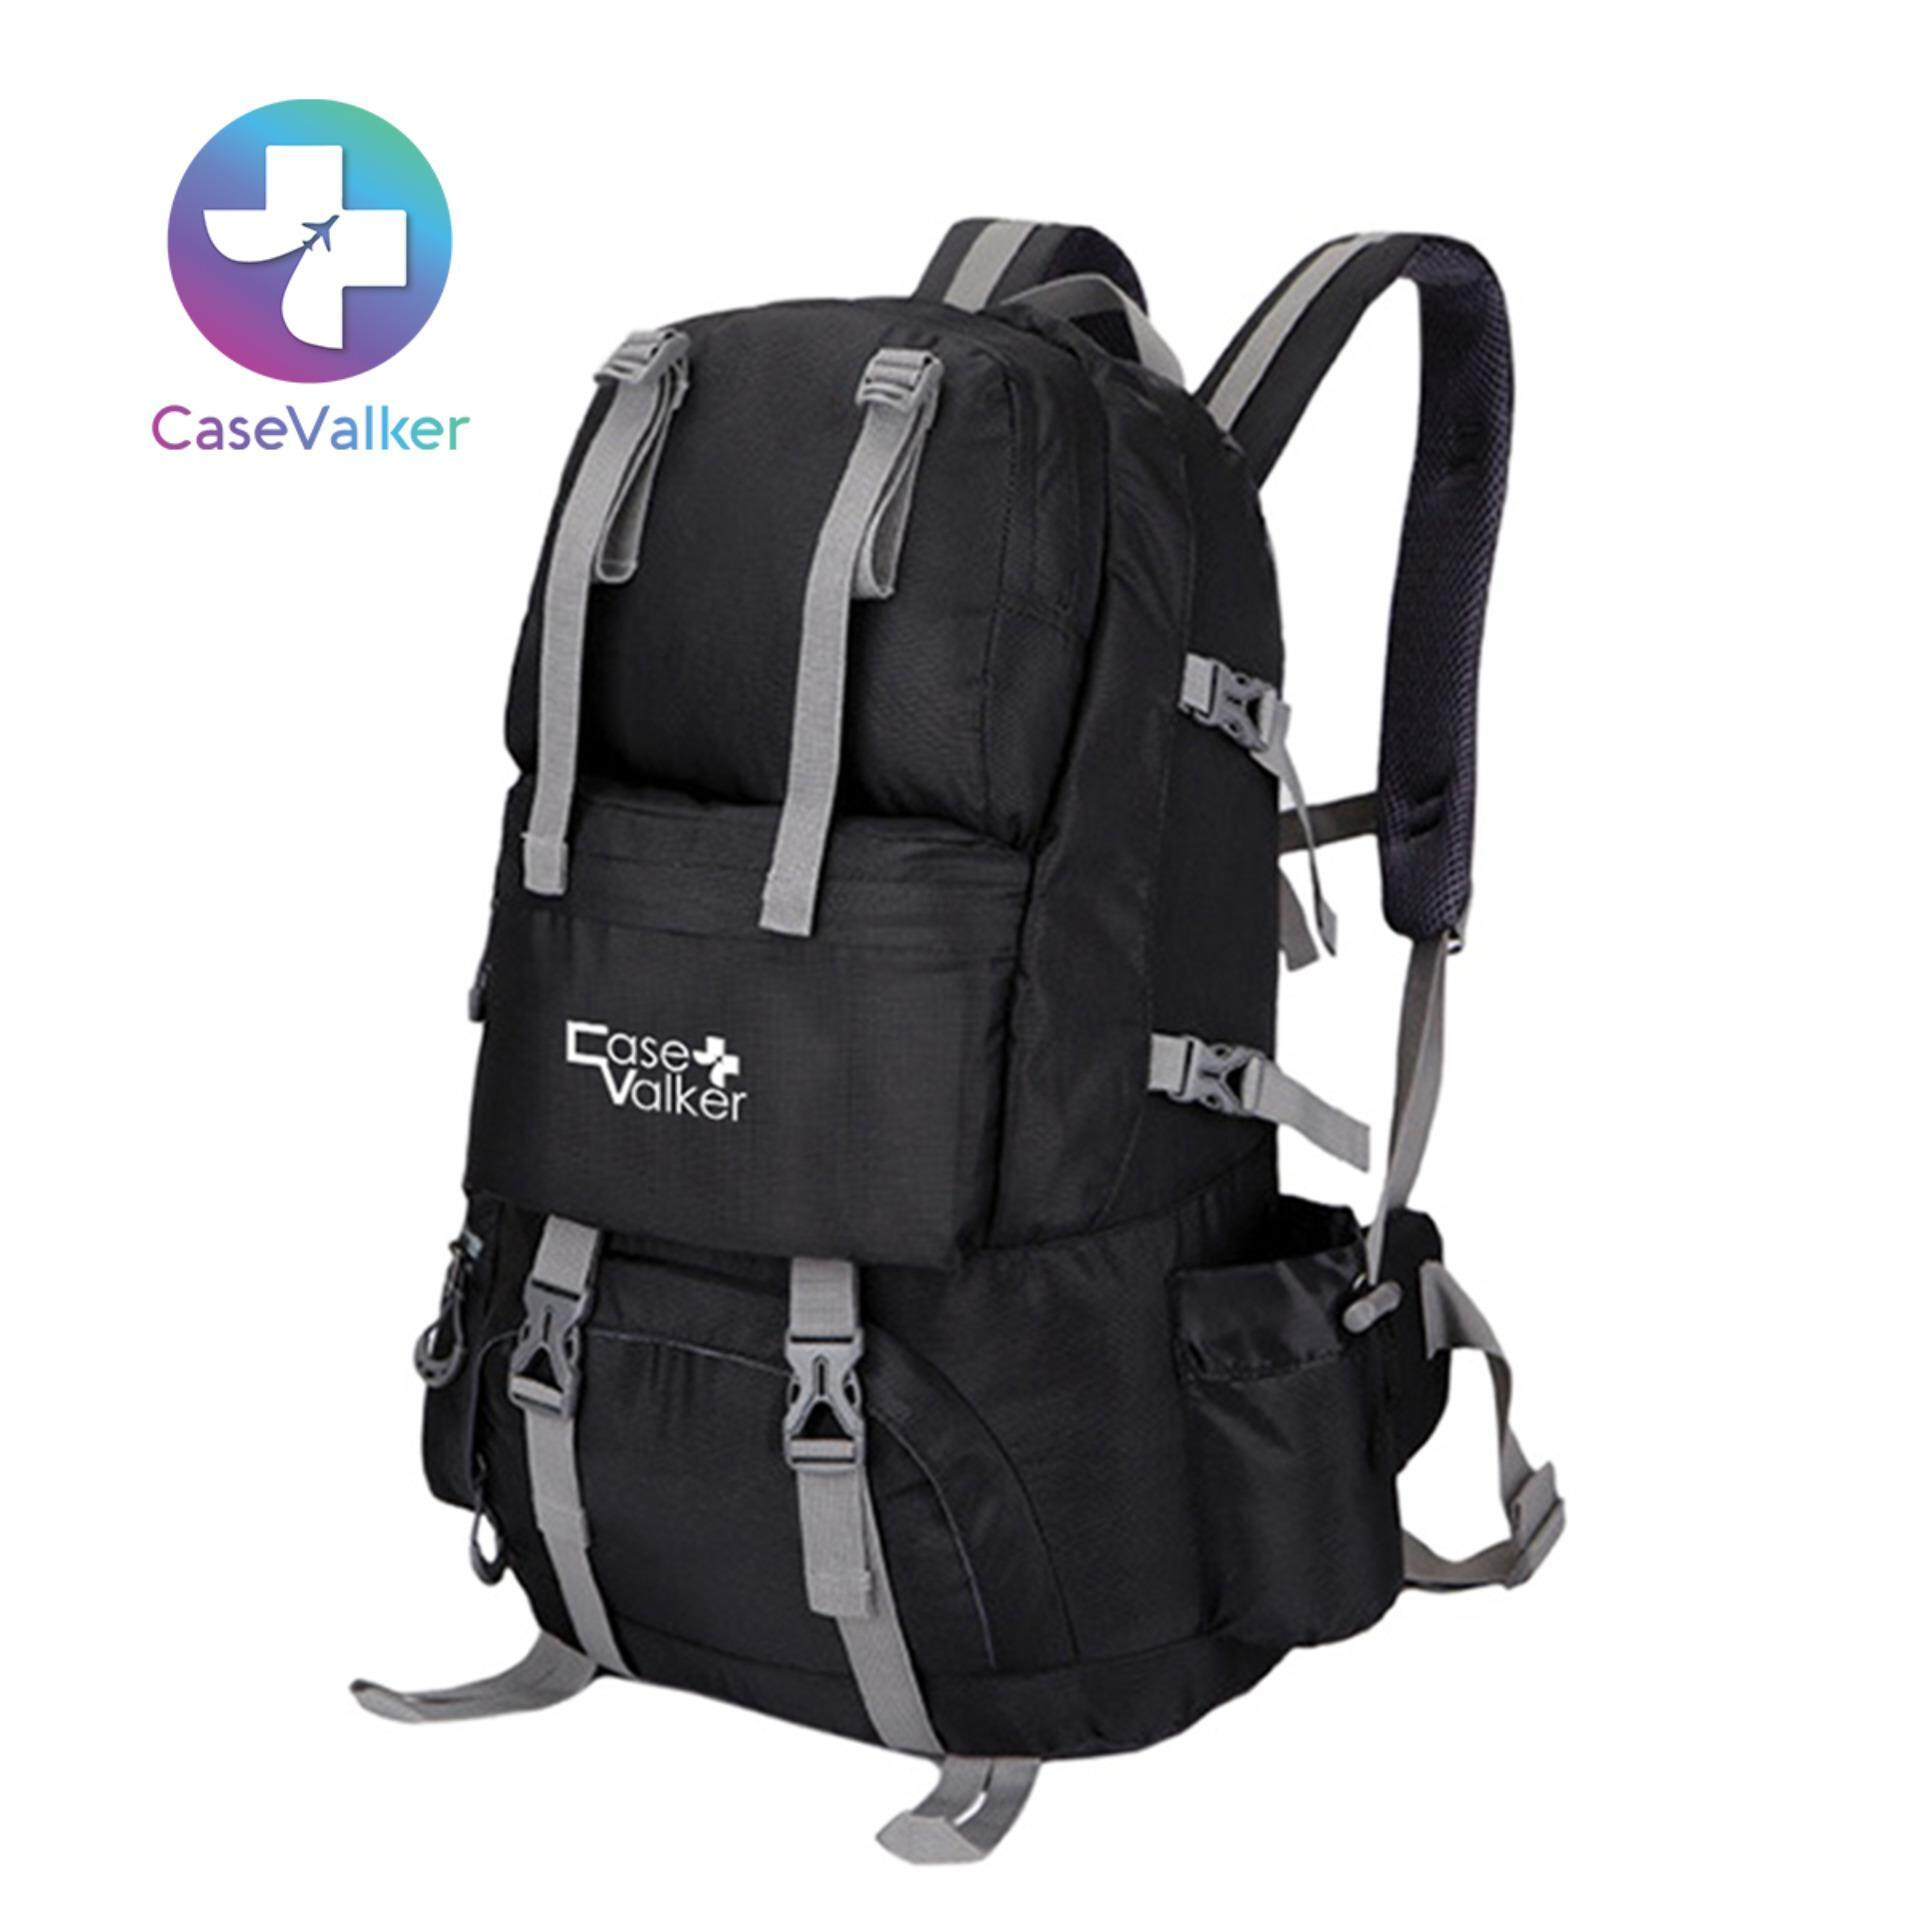 Case Valker Outdoor Hiking Climbing and Travel Nylon Backpack Bag 50L  (Black) dd6092f3c8328